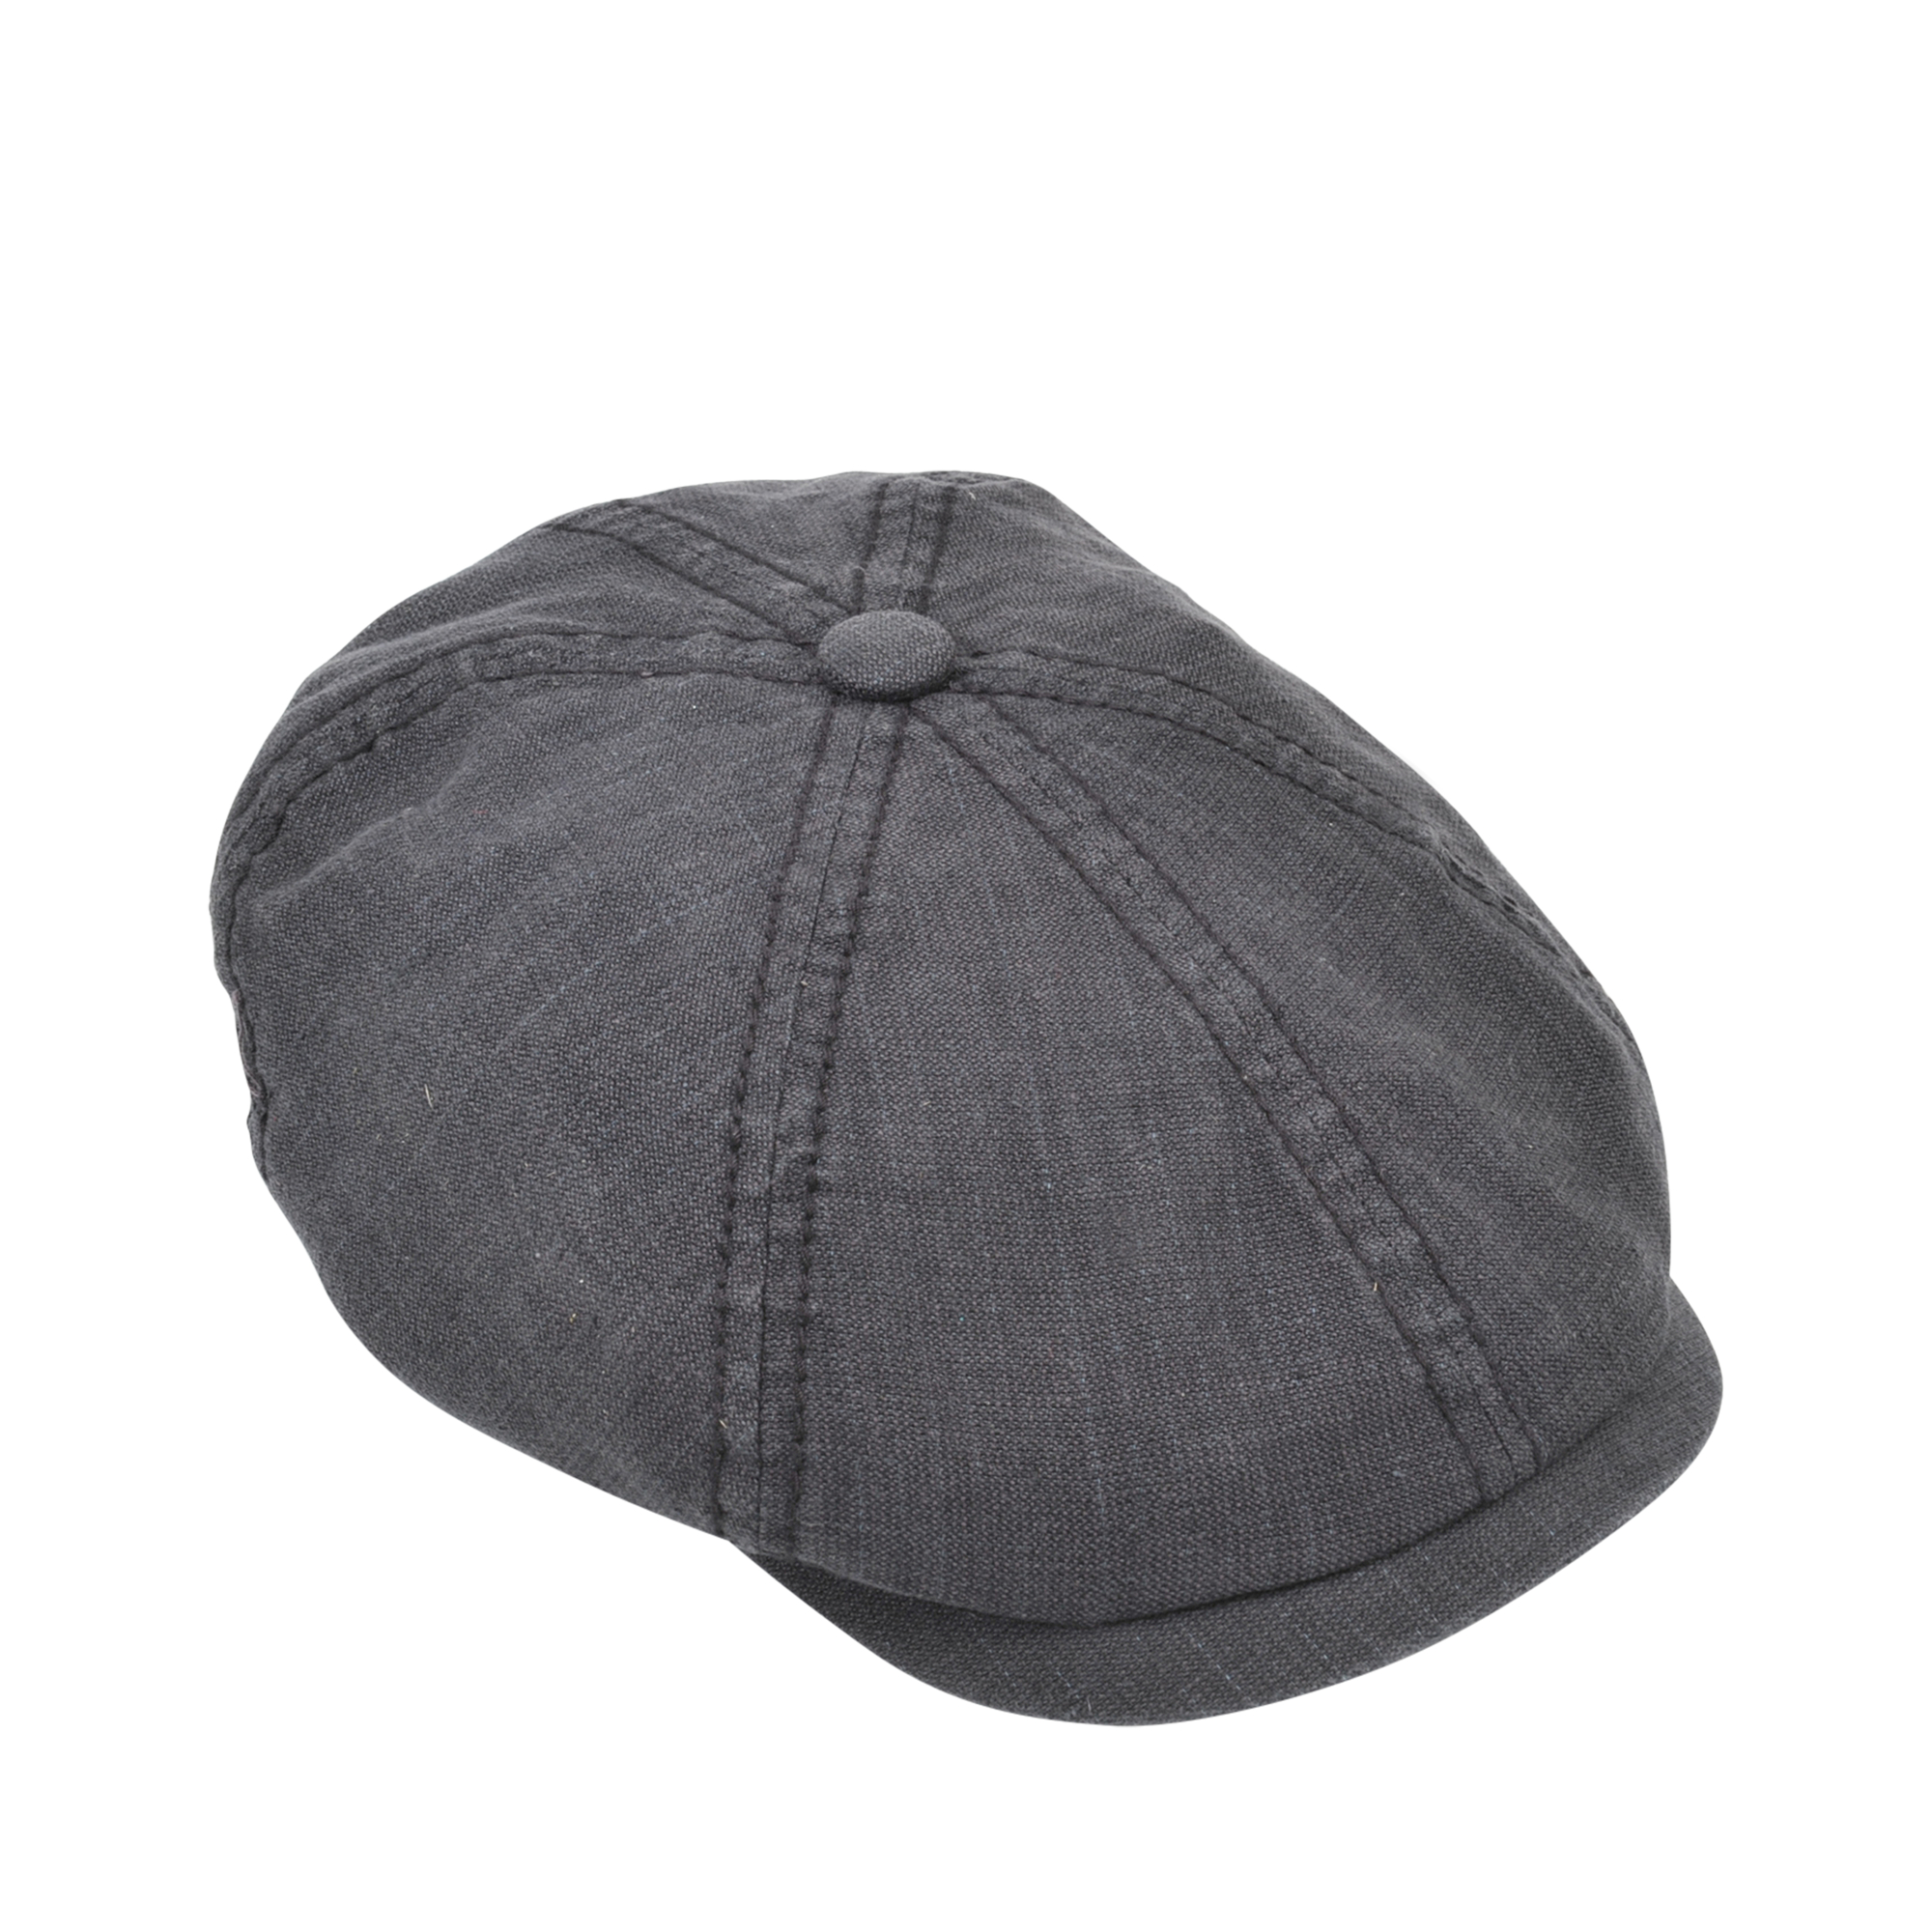 b3f81e9f Stetson Brooklyn Linen Cotton Cap in Gray - Lyst